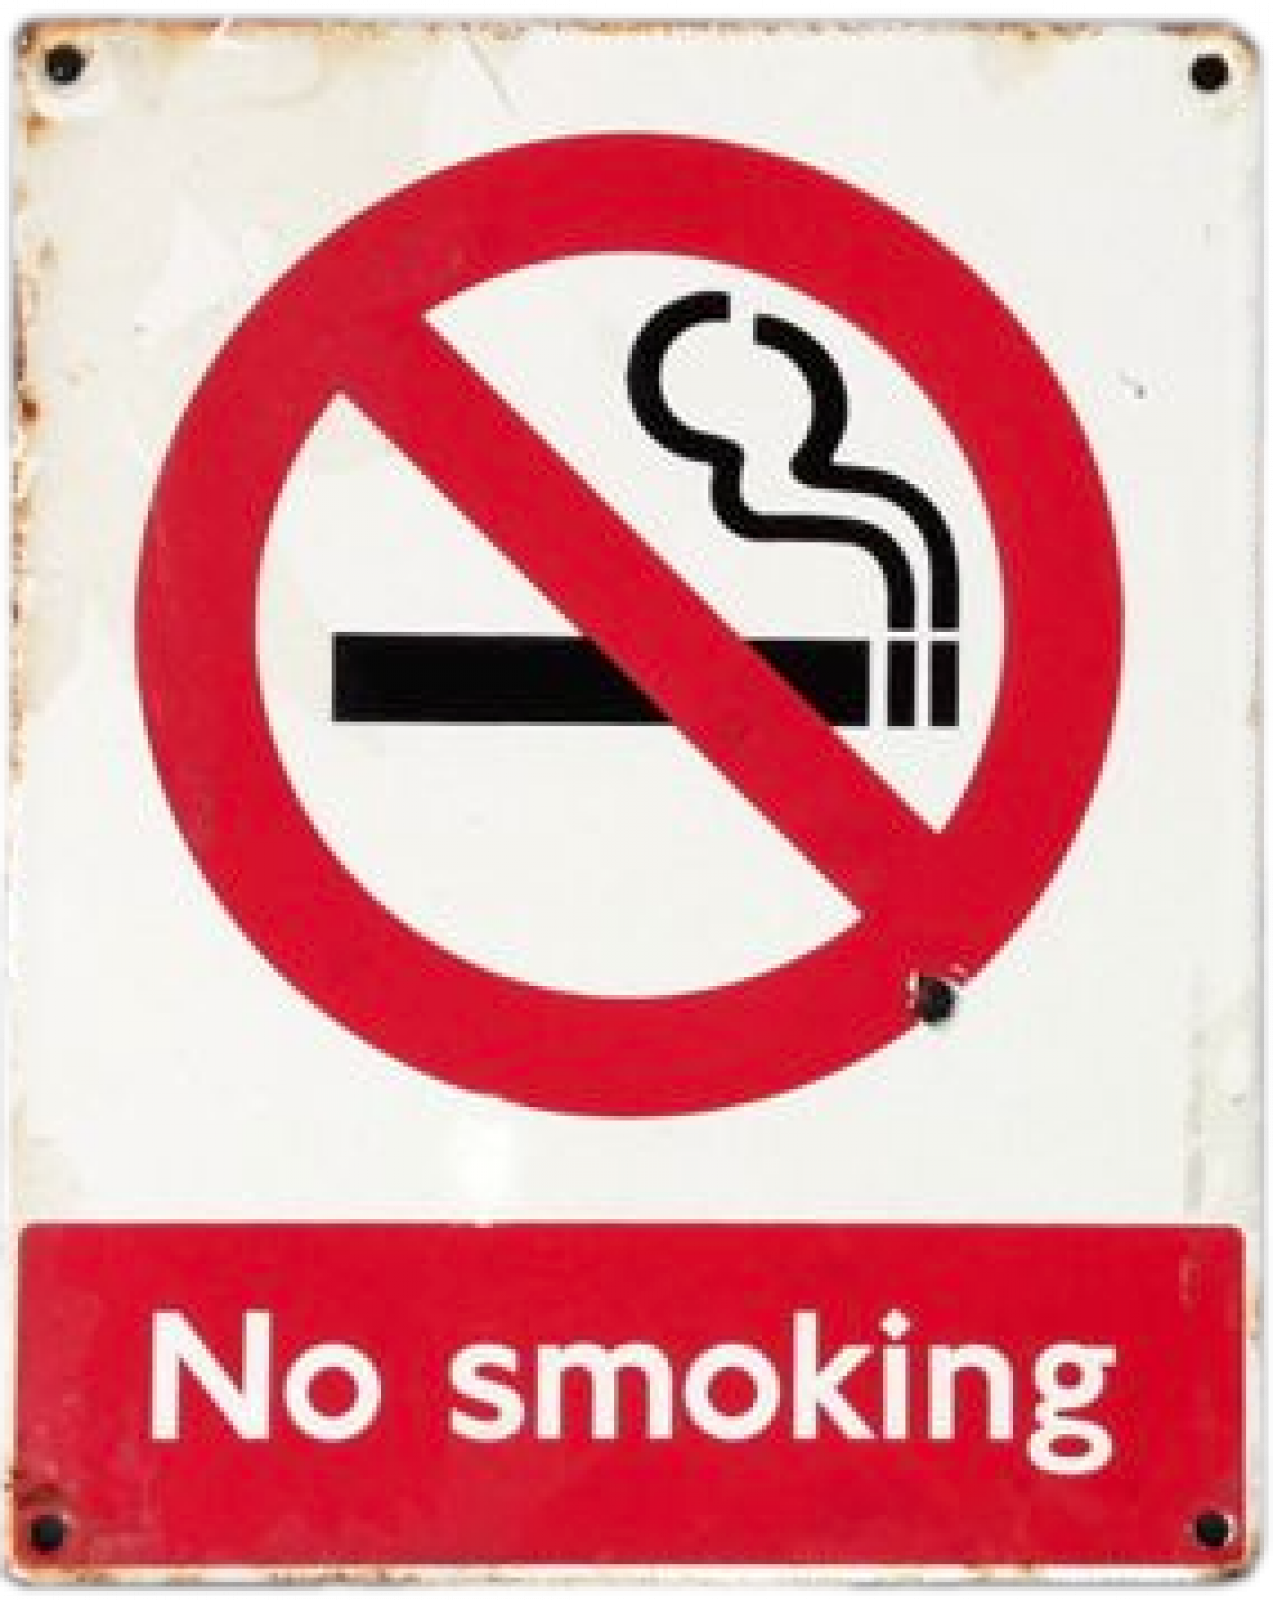 No Smoking Sign - Vintage from London Underground's Tube System thumbnails